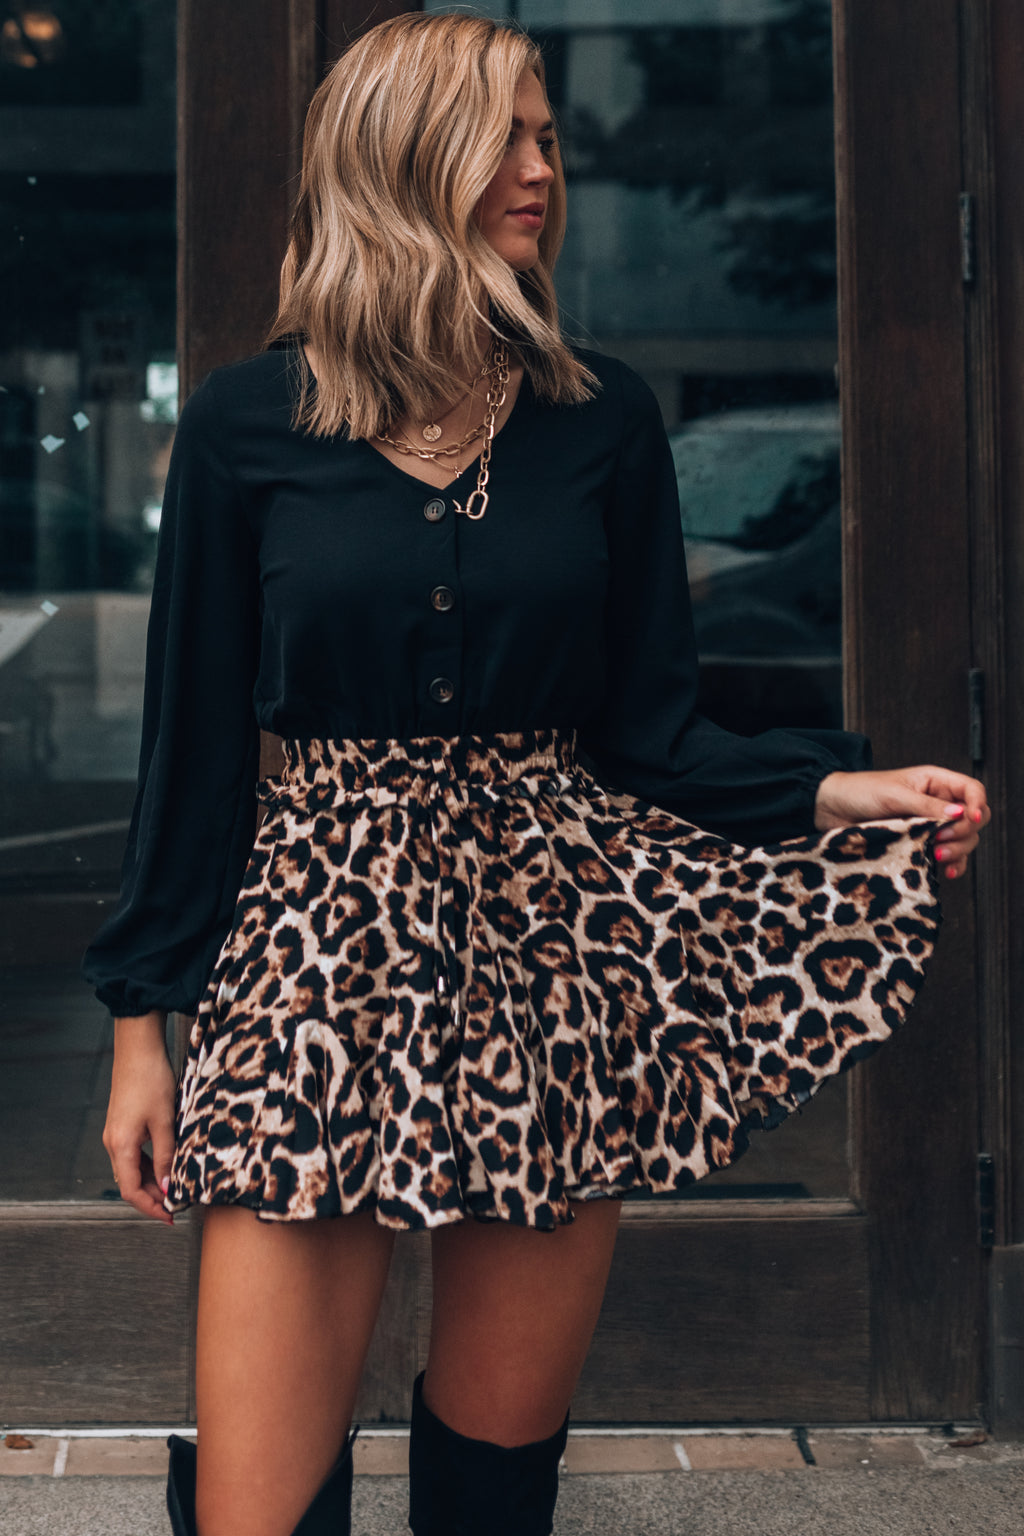 Wild Nights Leopard Romper Dress PRE-ORDER Ships End Of September